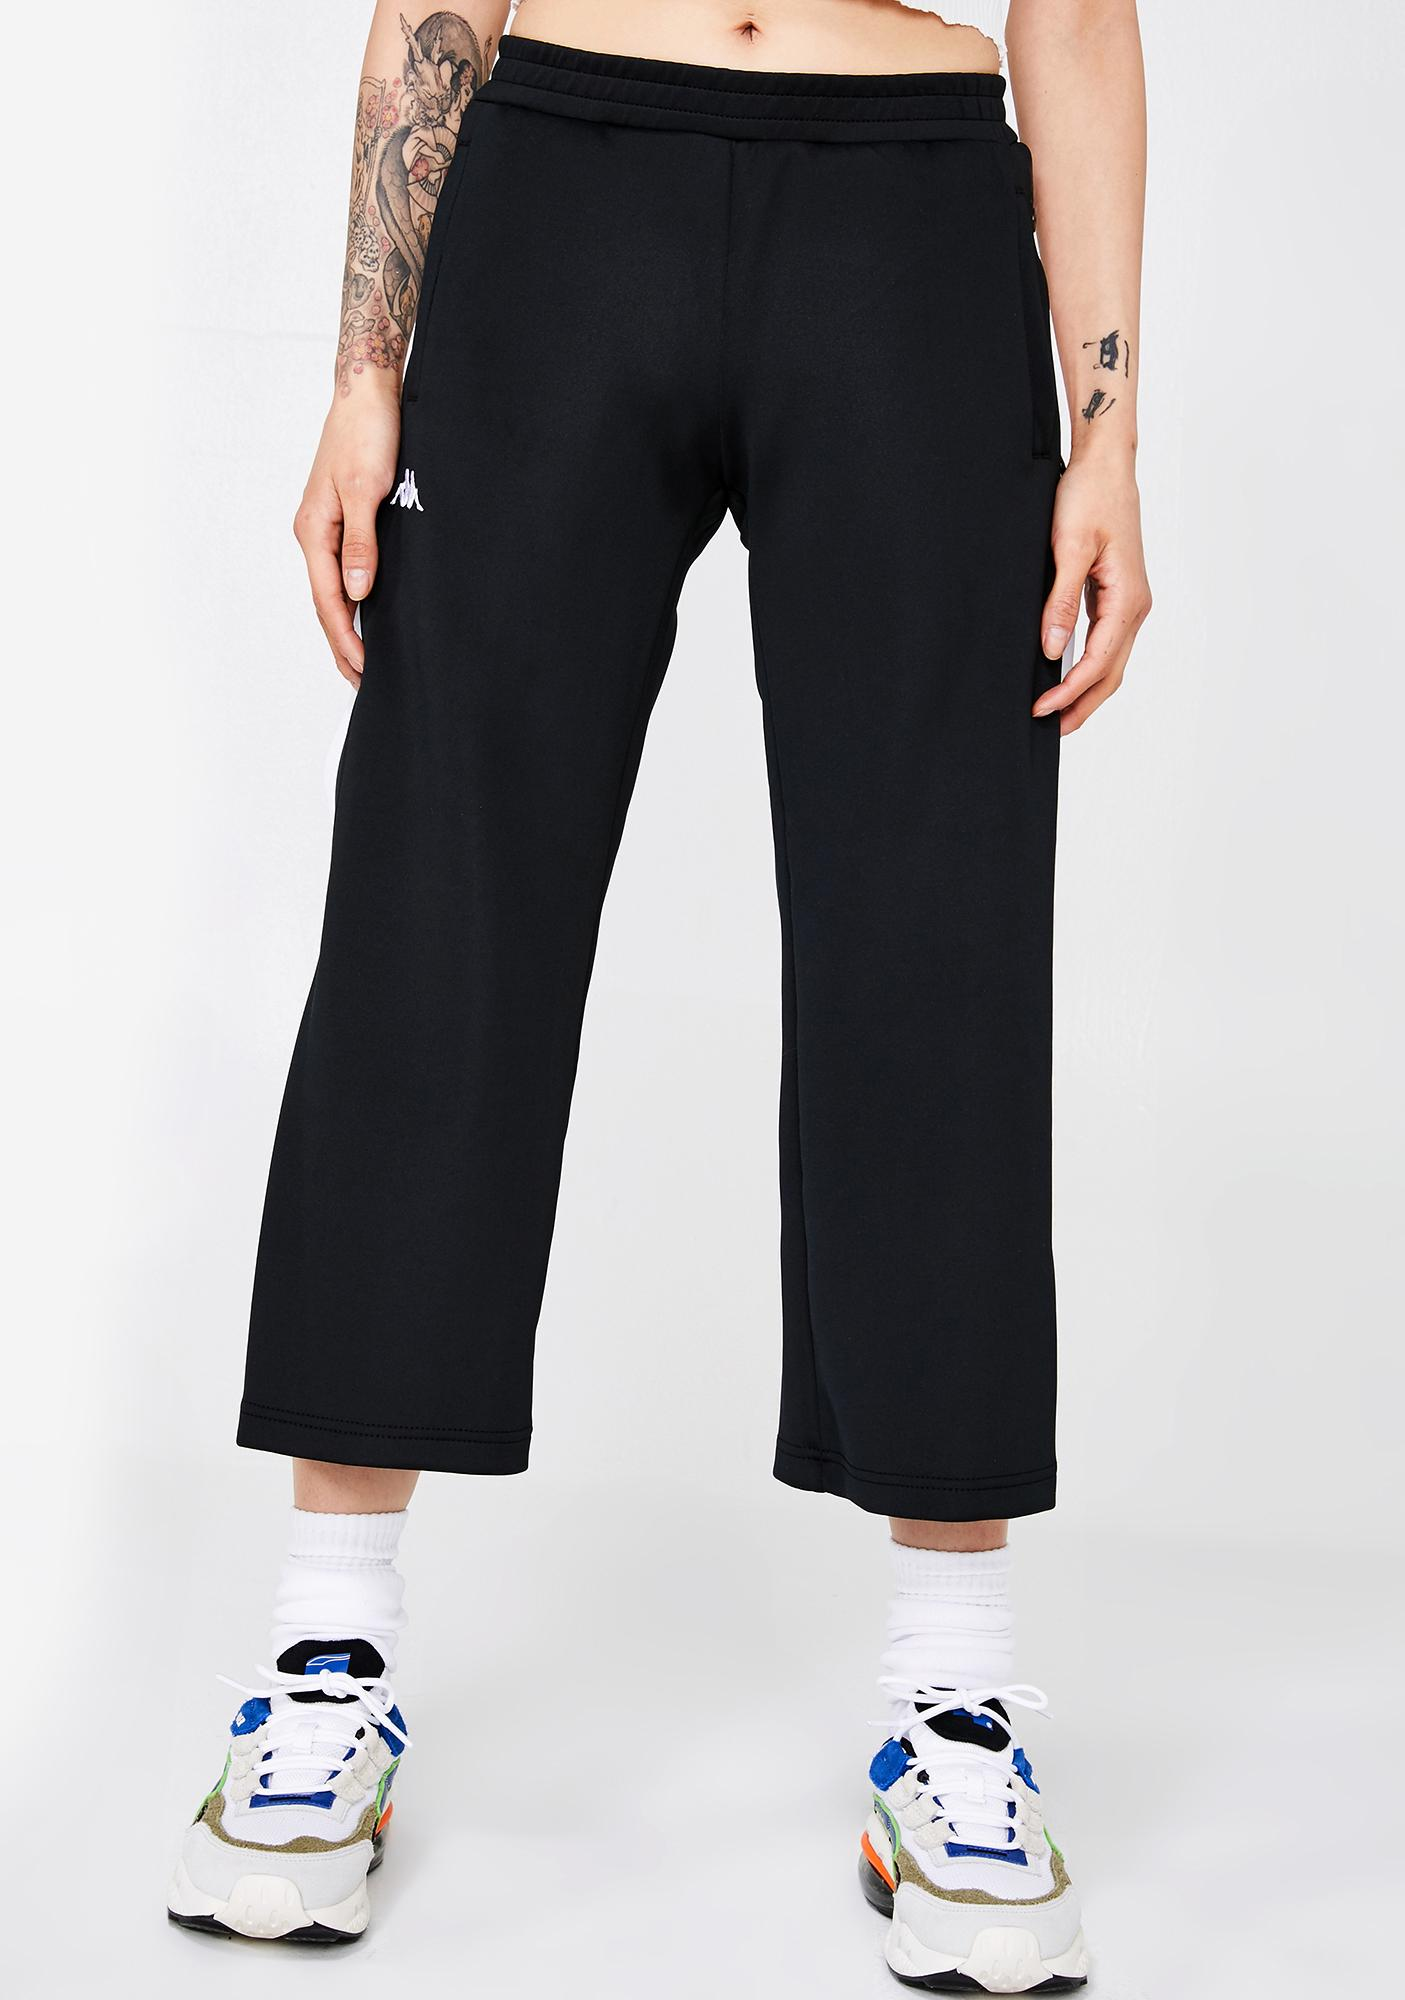 Kappa Authentic Barsi Track Pants